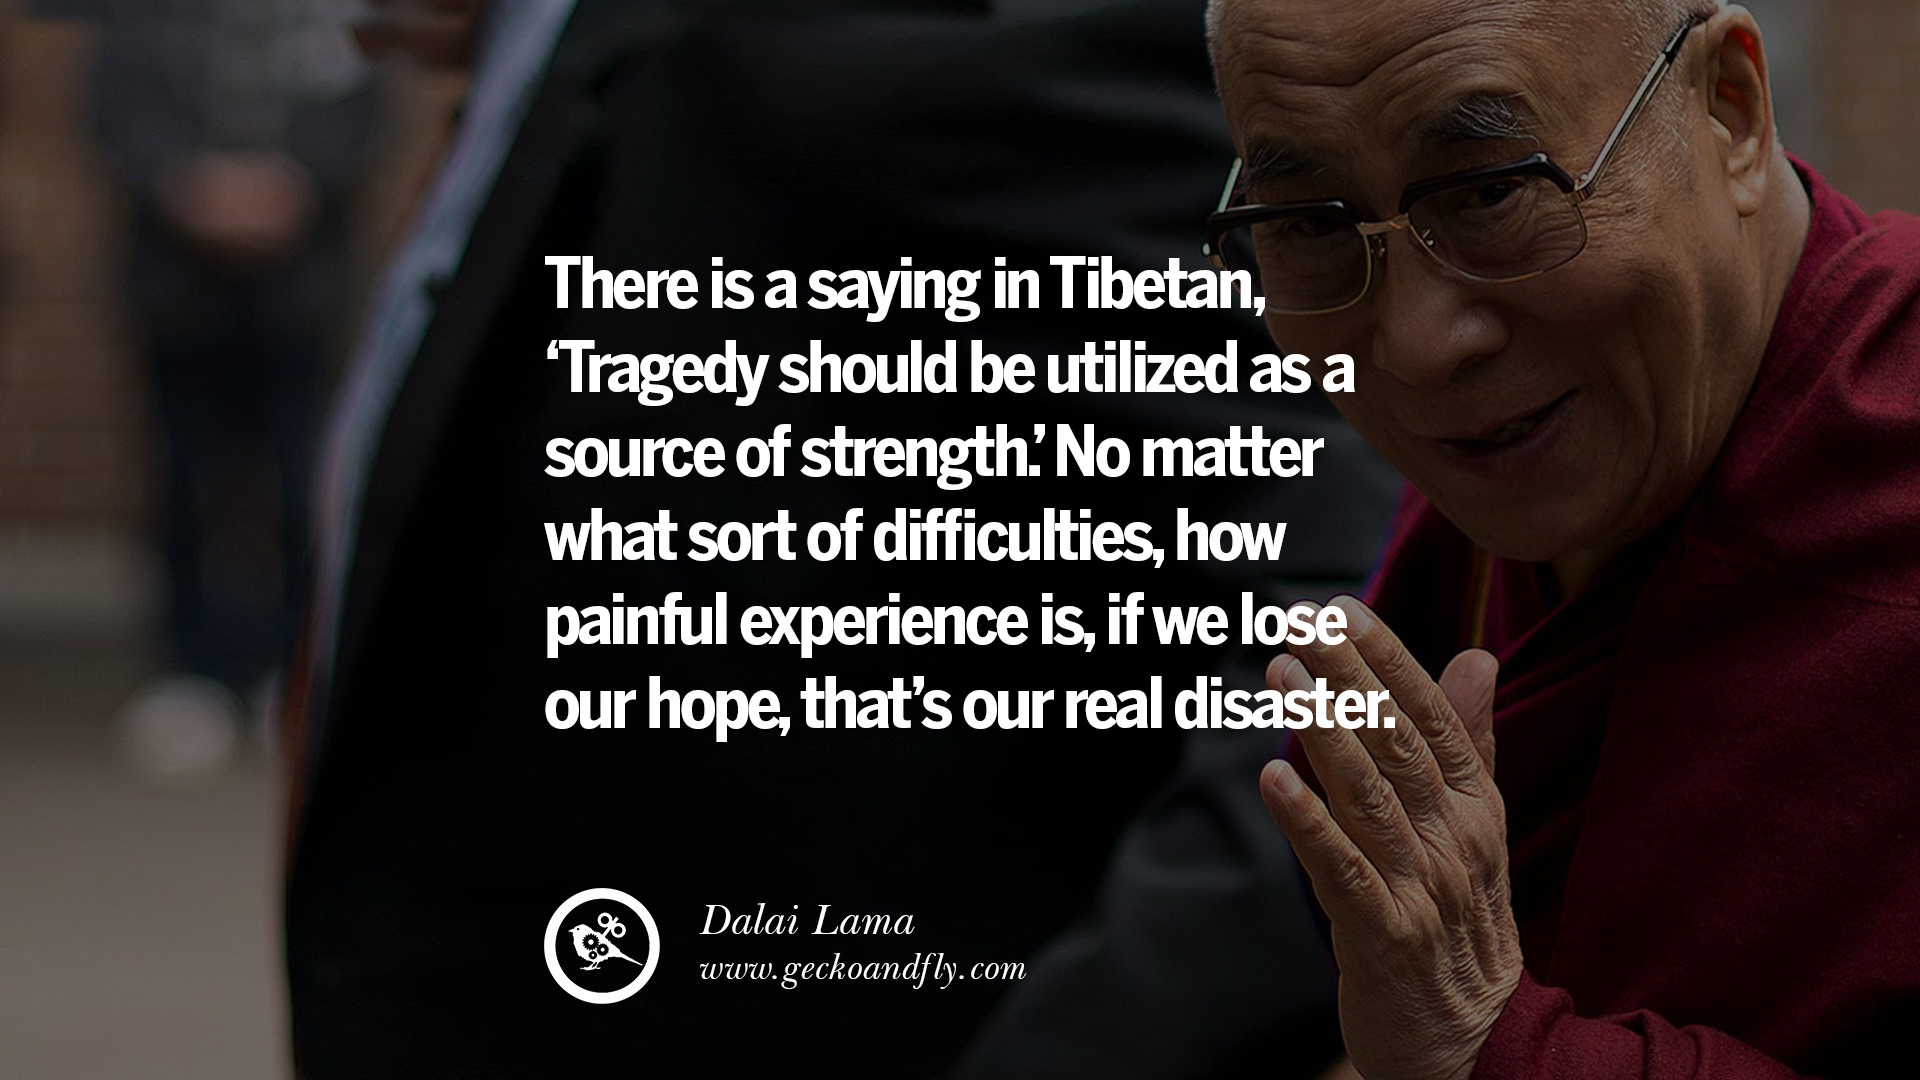 There is a saying in tibetan tragedy should be utilized as a source of strength no matter what sort of difficulties how painful experience is